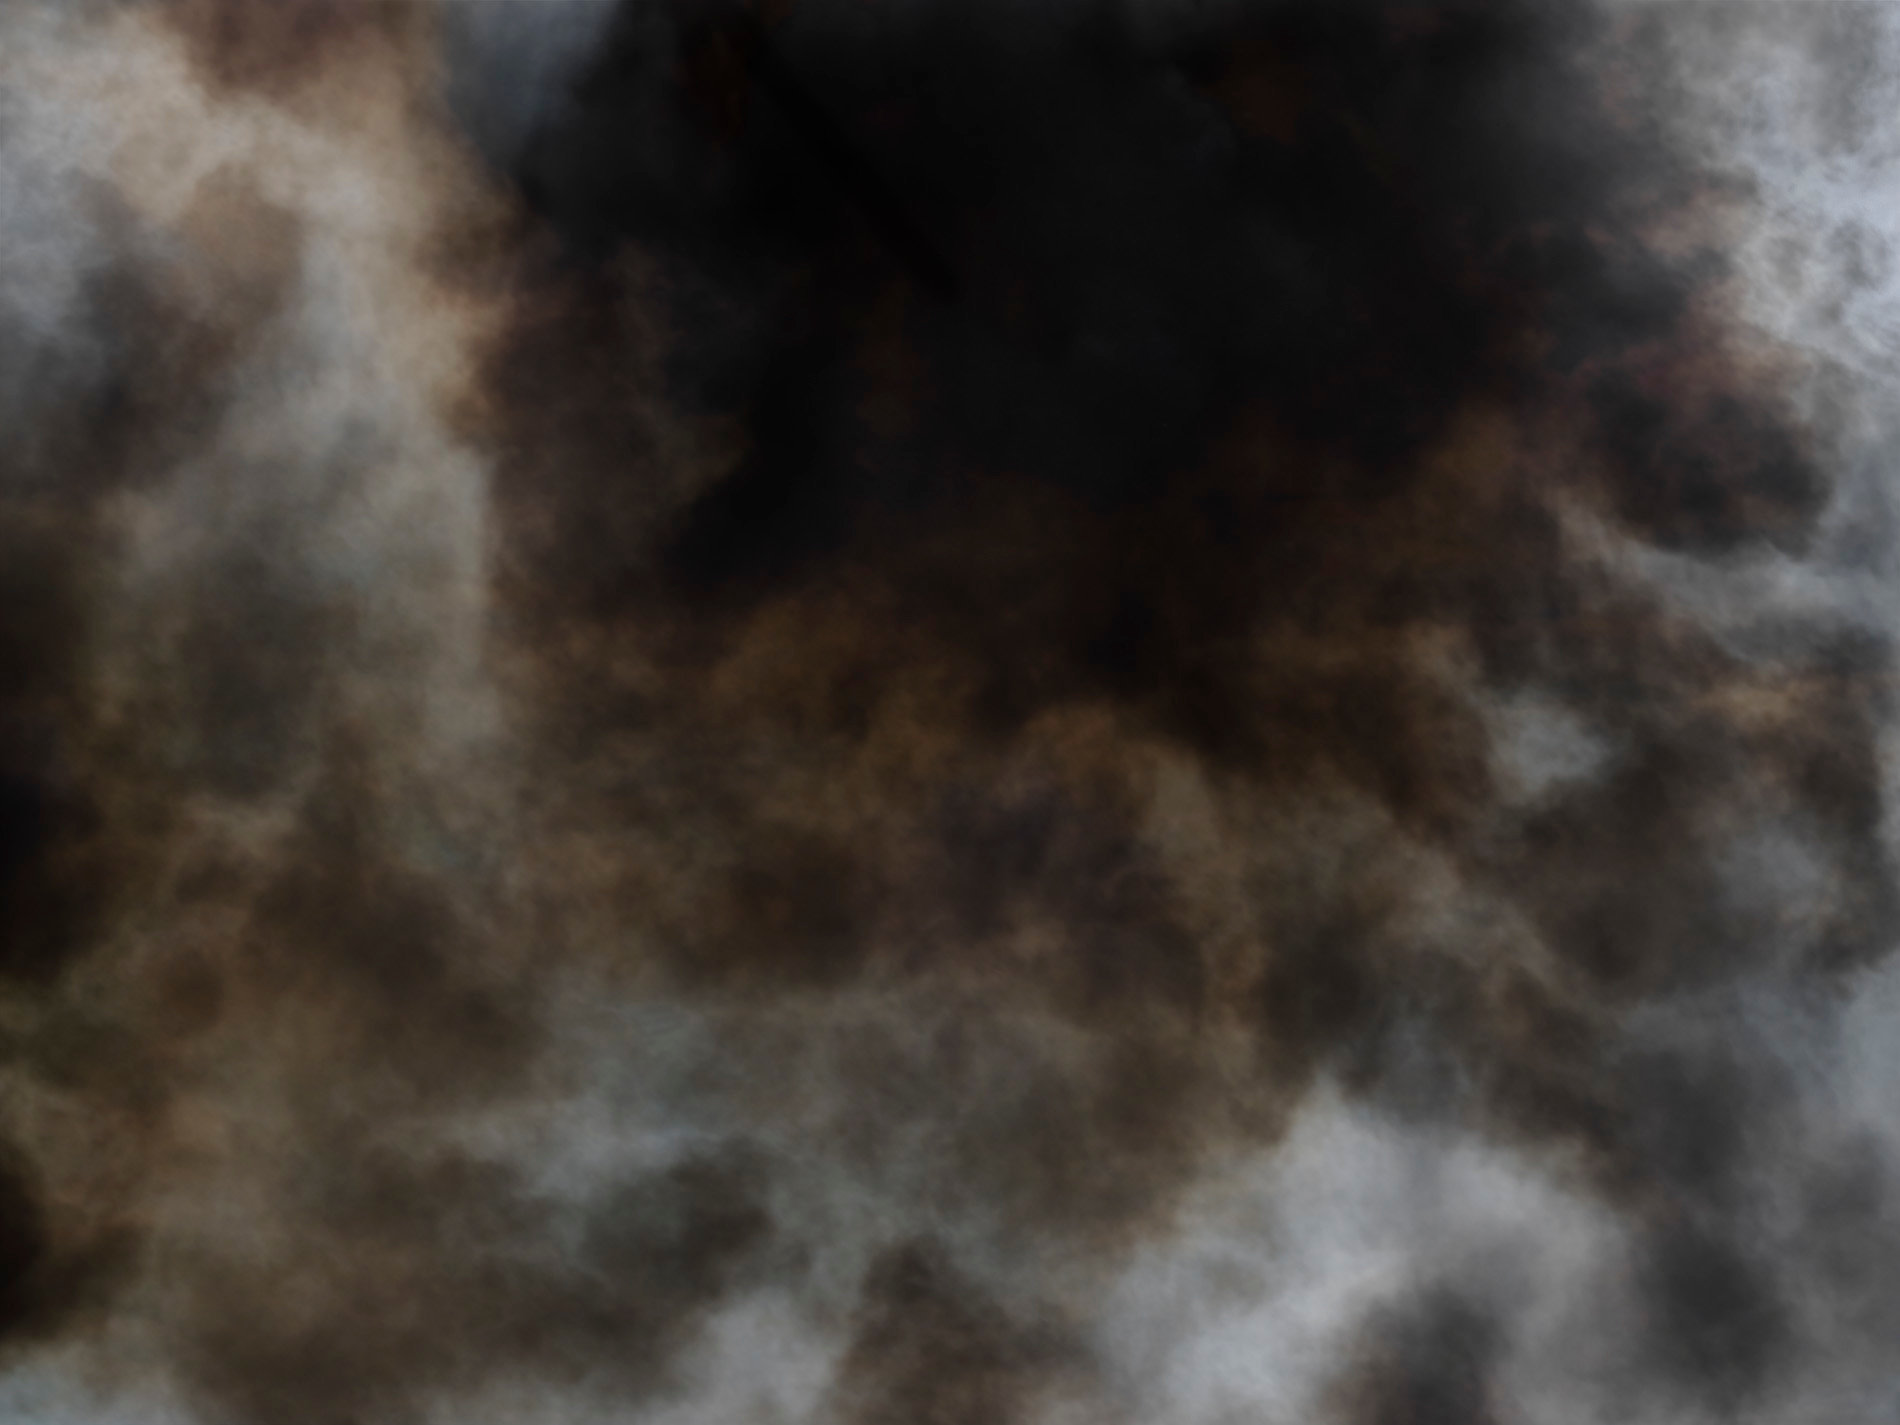 Abstract smoke from a fire